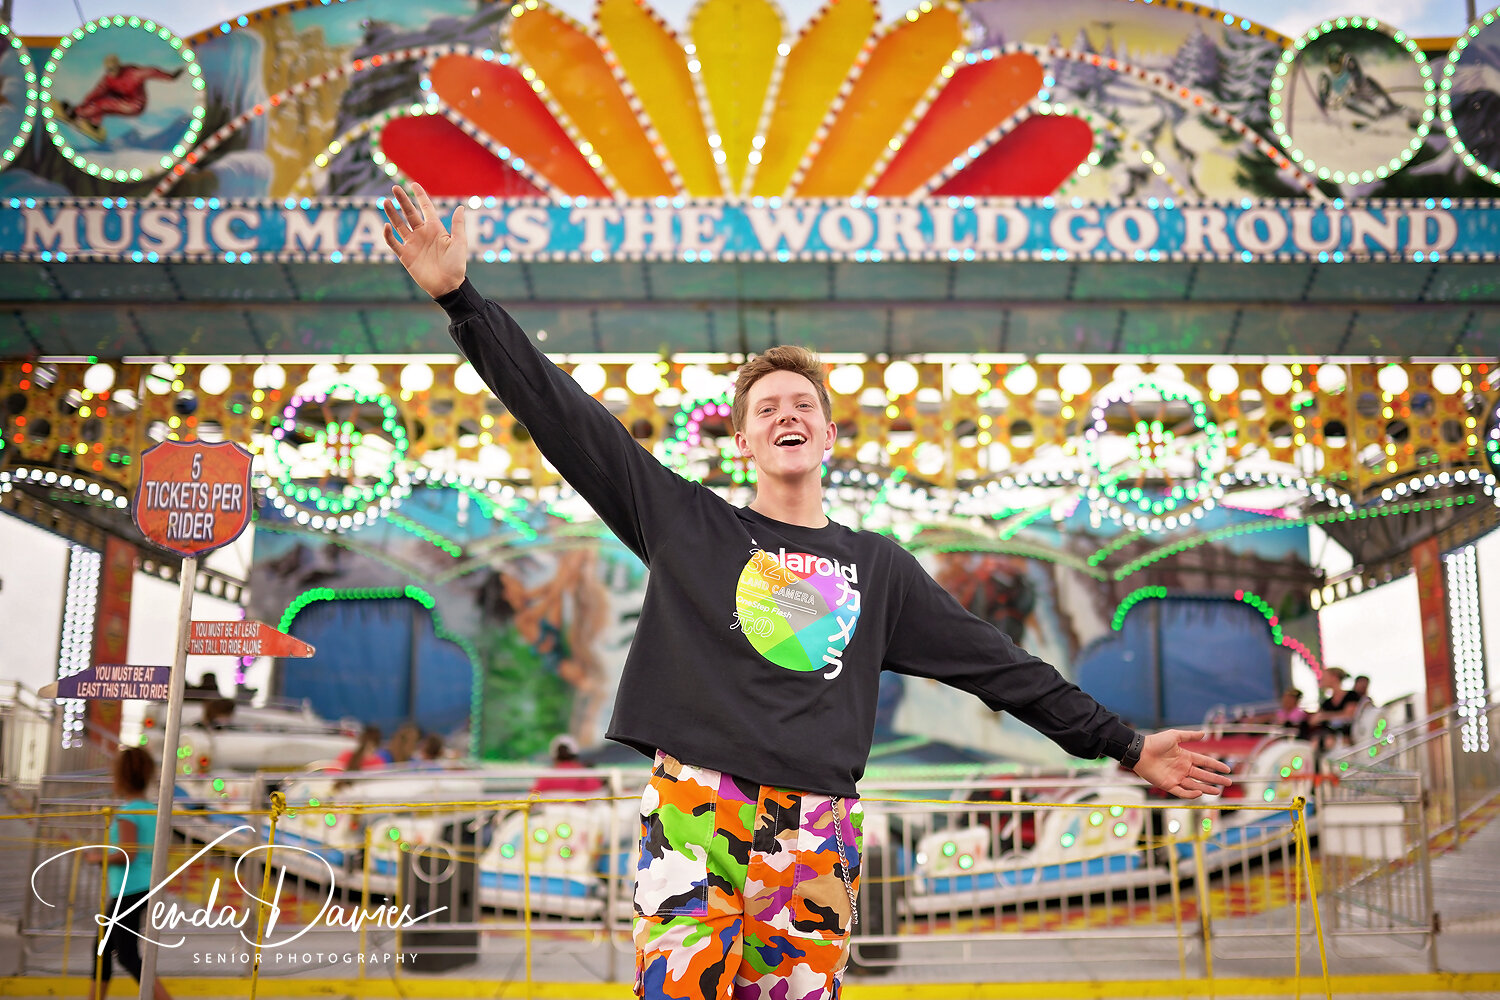 What a perfect backdrop for a kid who likes to dance as much as Matt does! (And sometimes you're just going to get random fair goers in the shot.)